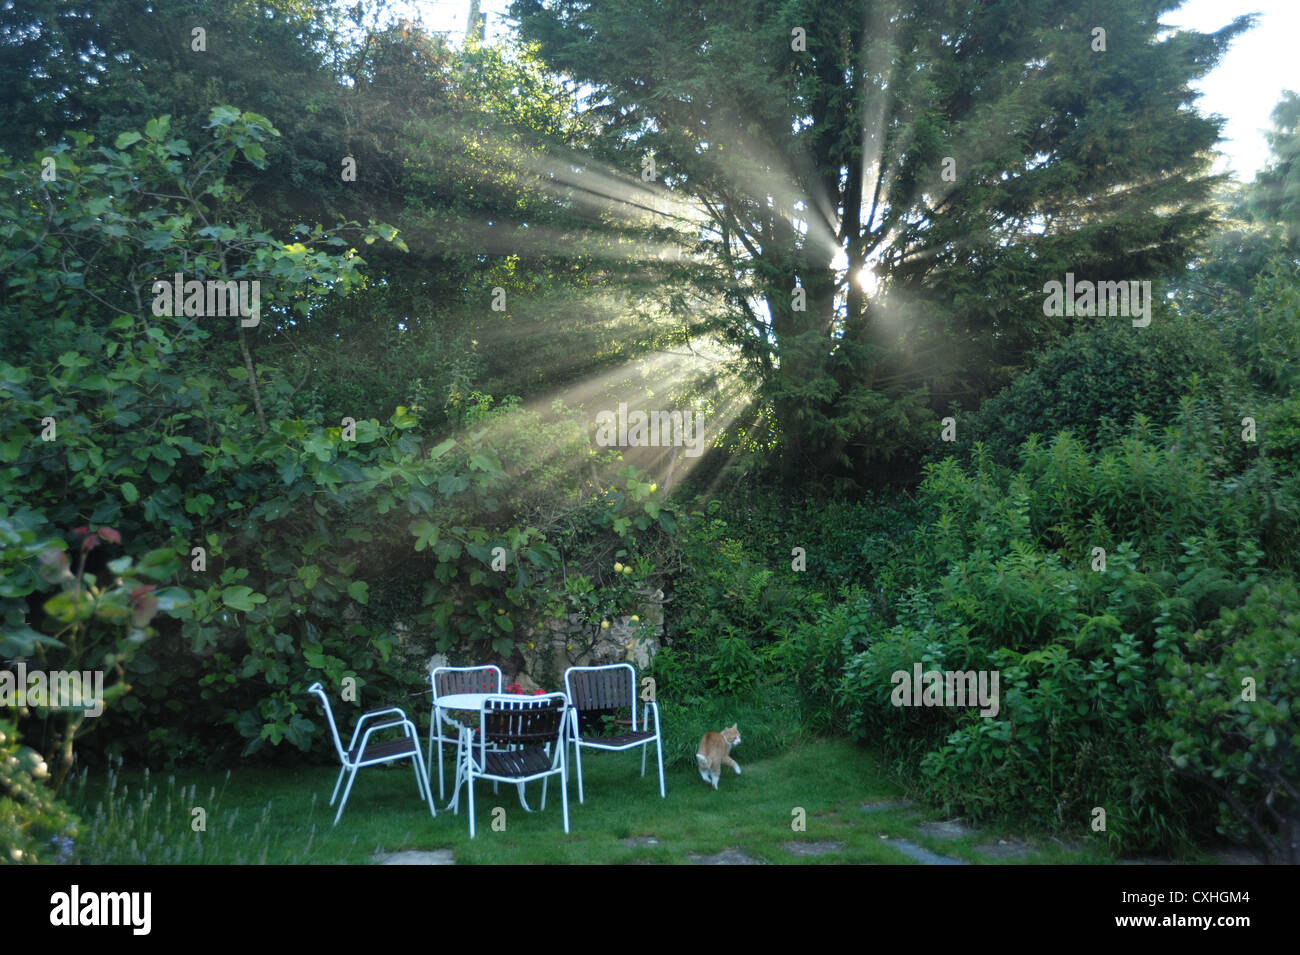 The morning sun's misty rays through a conifer tree in a Devon garden - Stock Image